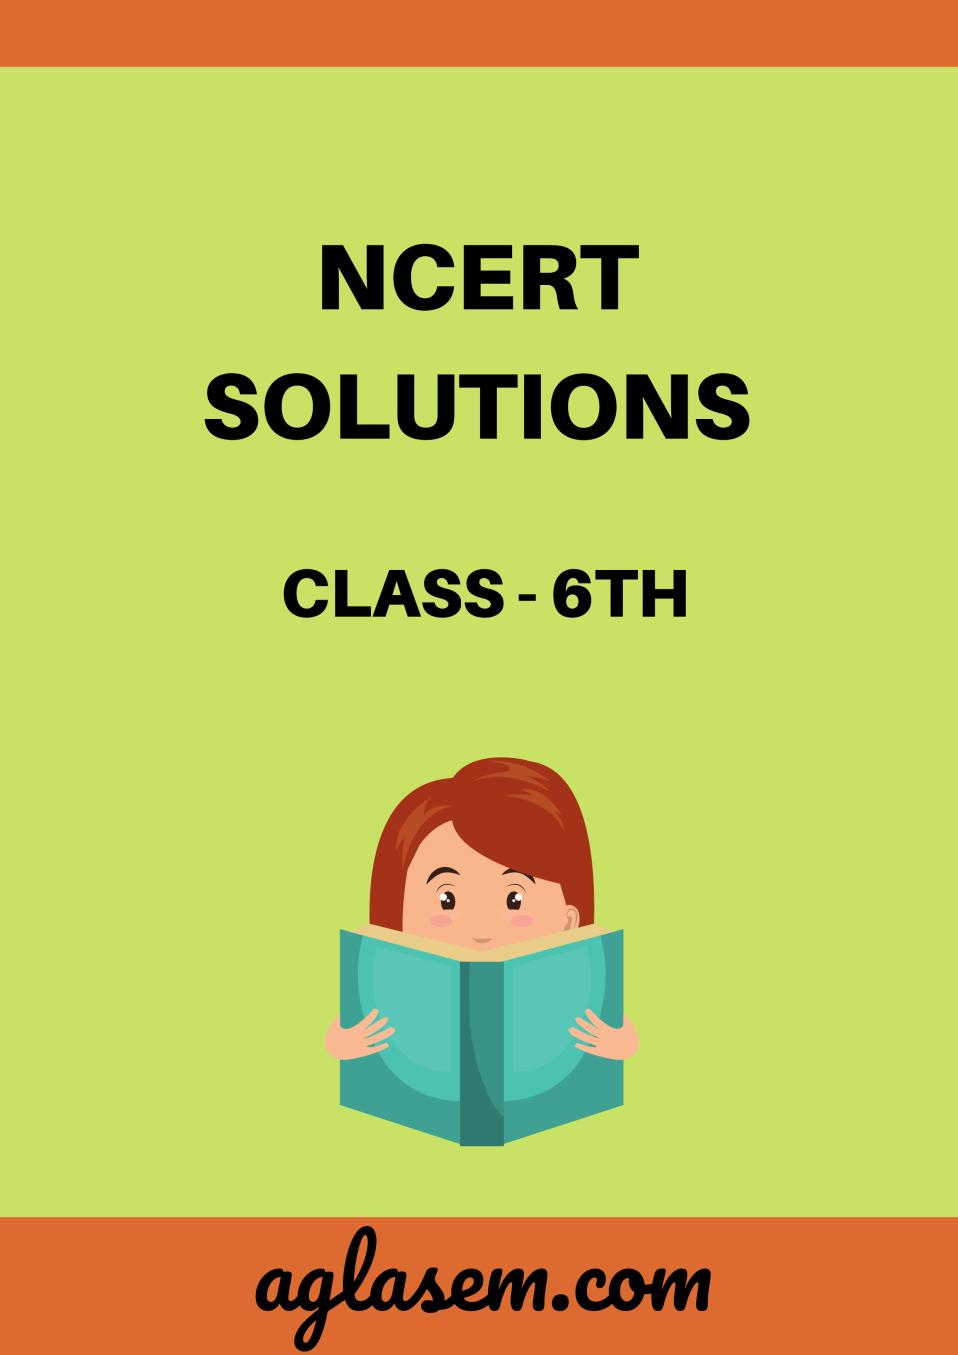 NCERT Solutions Class 6 Science Chapter 7 Getting To Know Plants